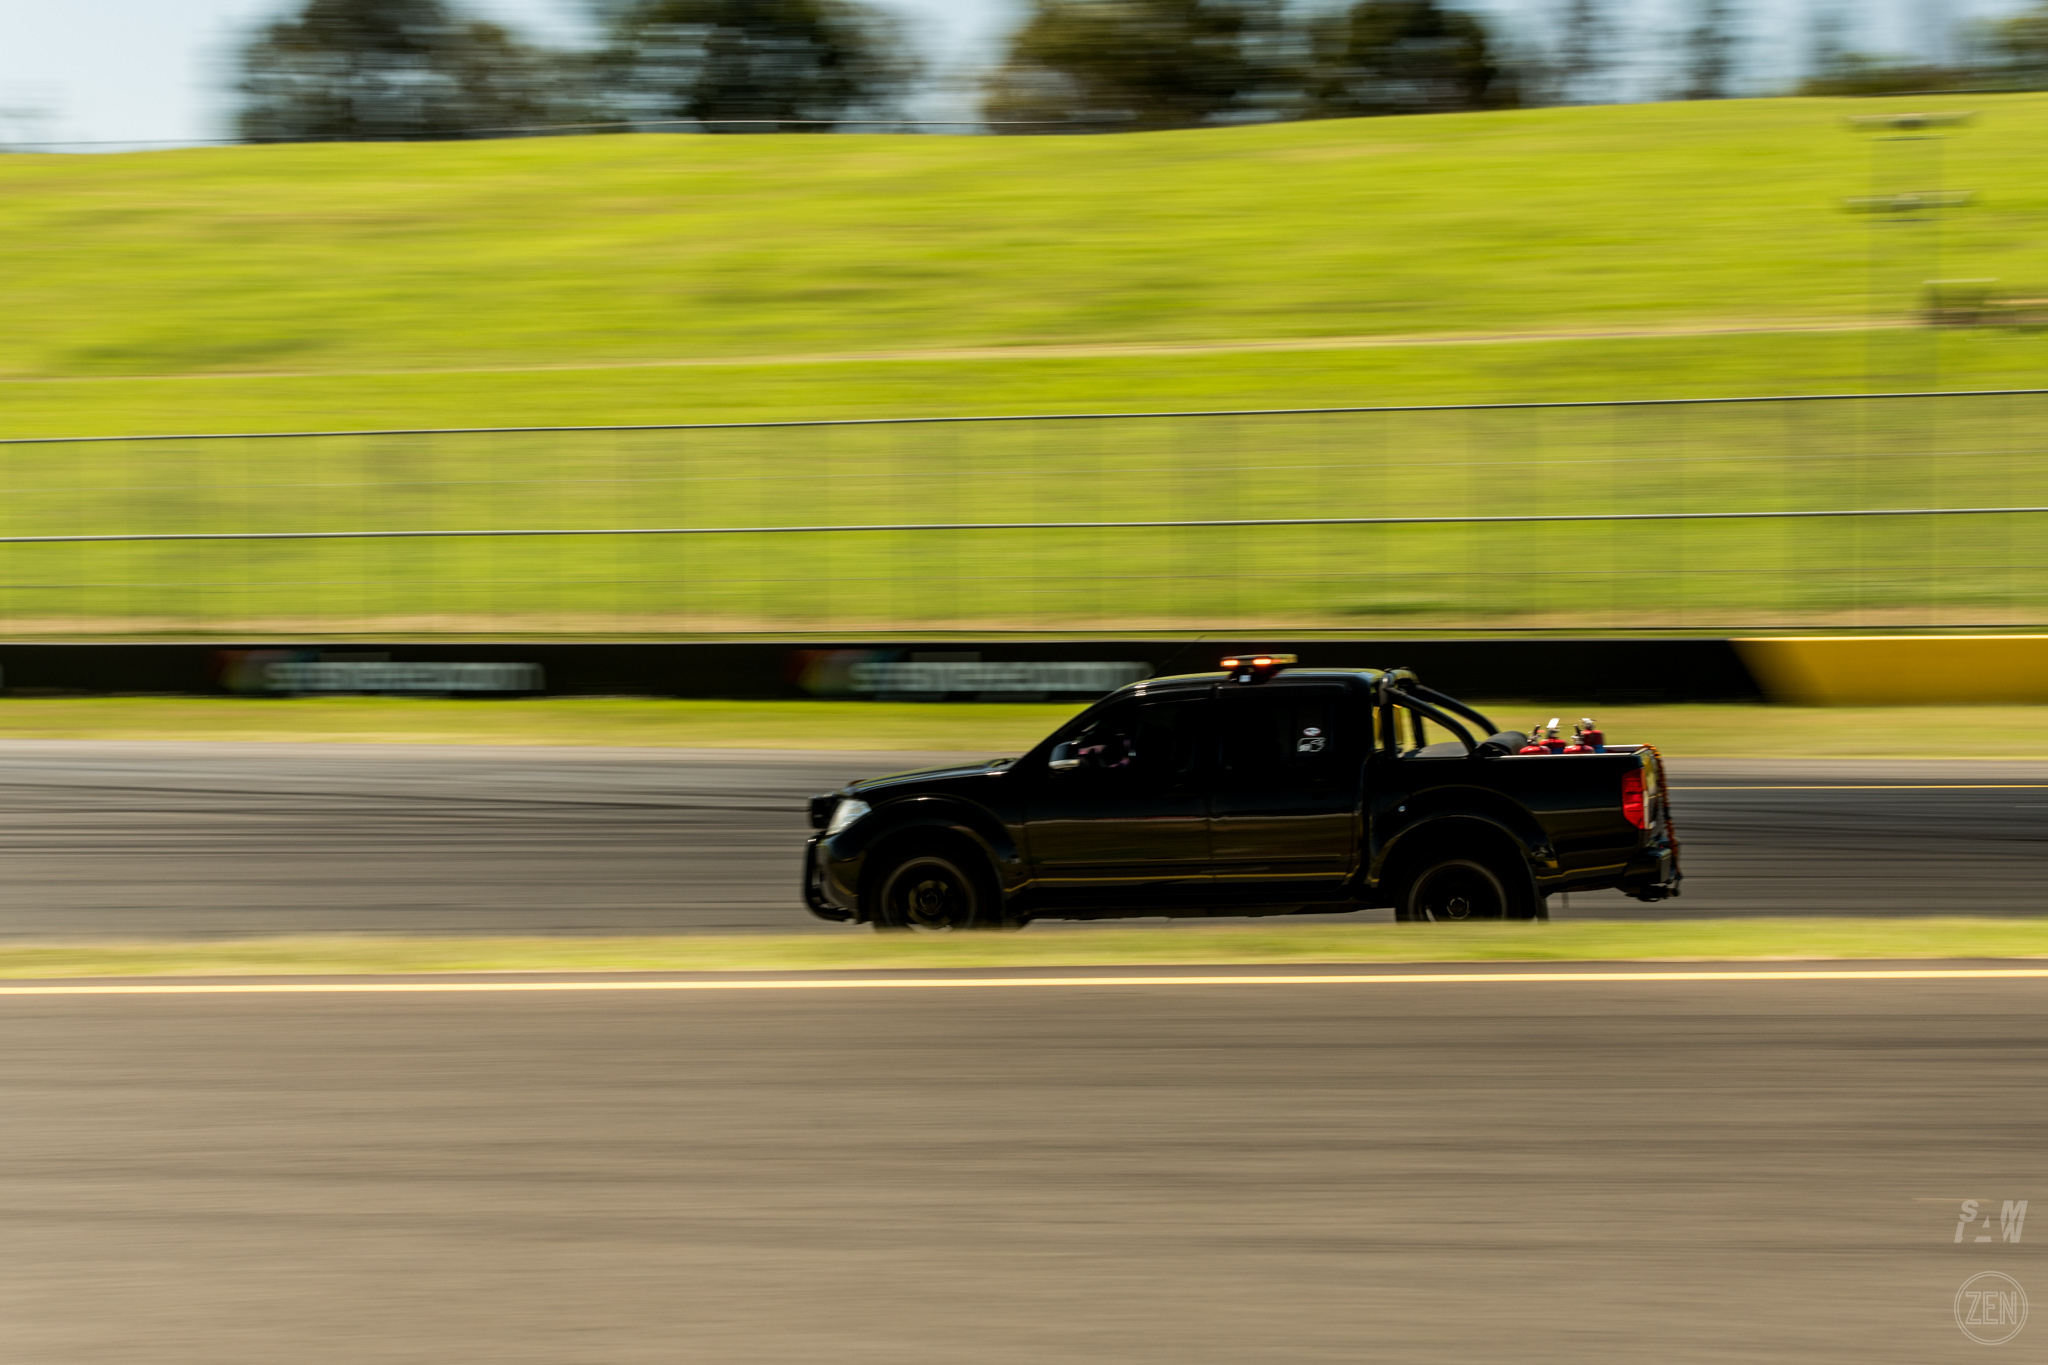 2019-10-18 - WTAC Day 01 050